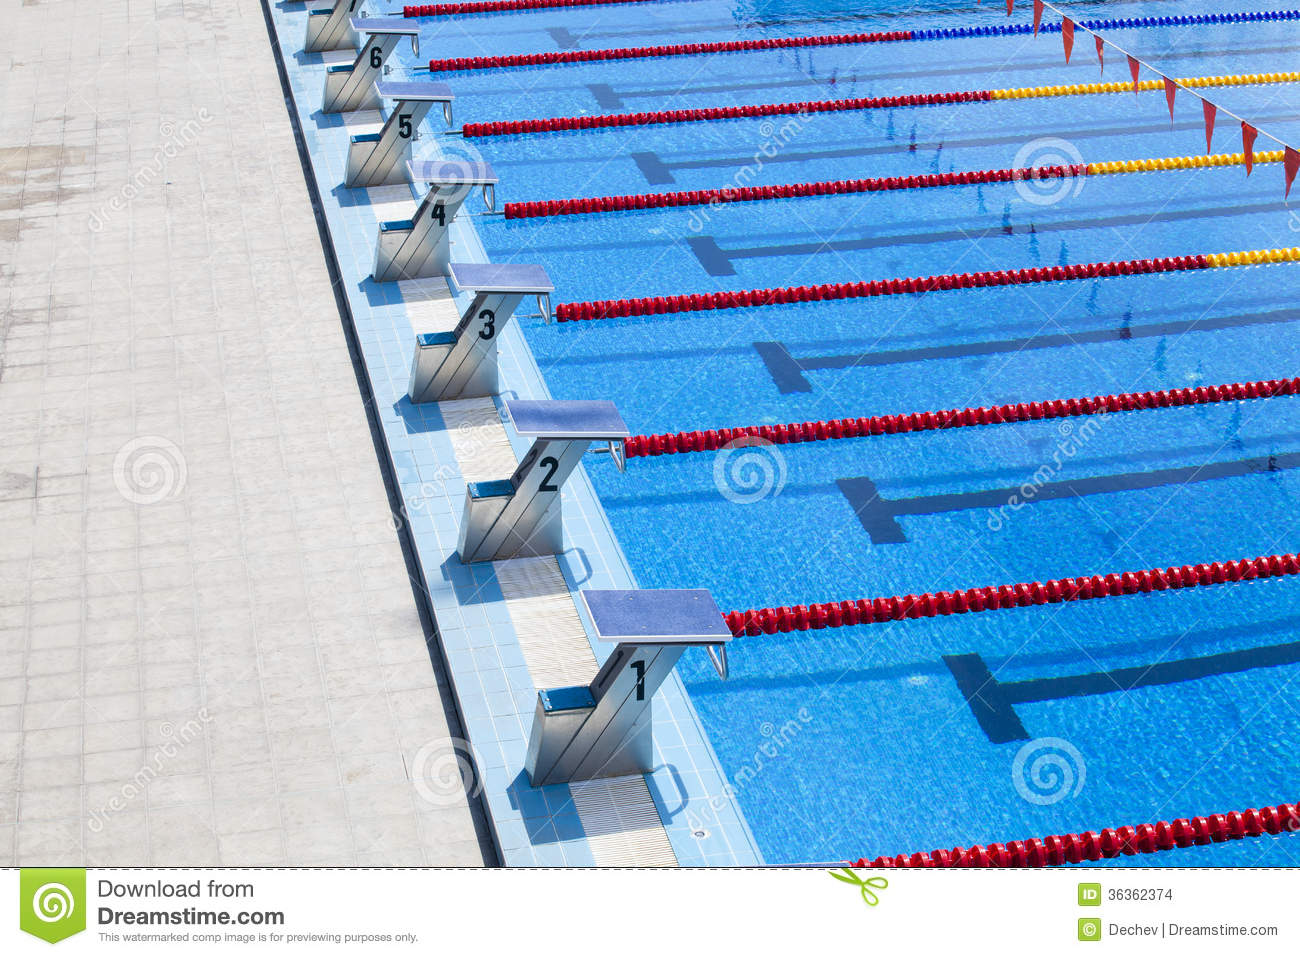 The Row Of Starting Blocks Of A Swimming Pool Stock Photo ...